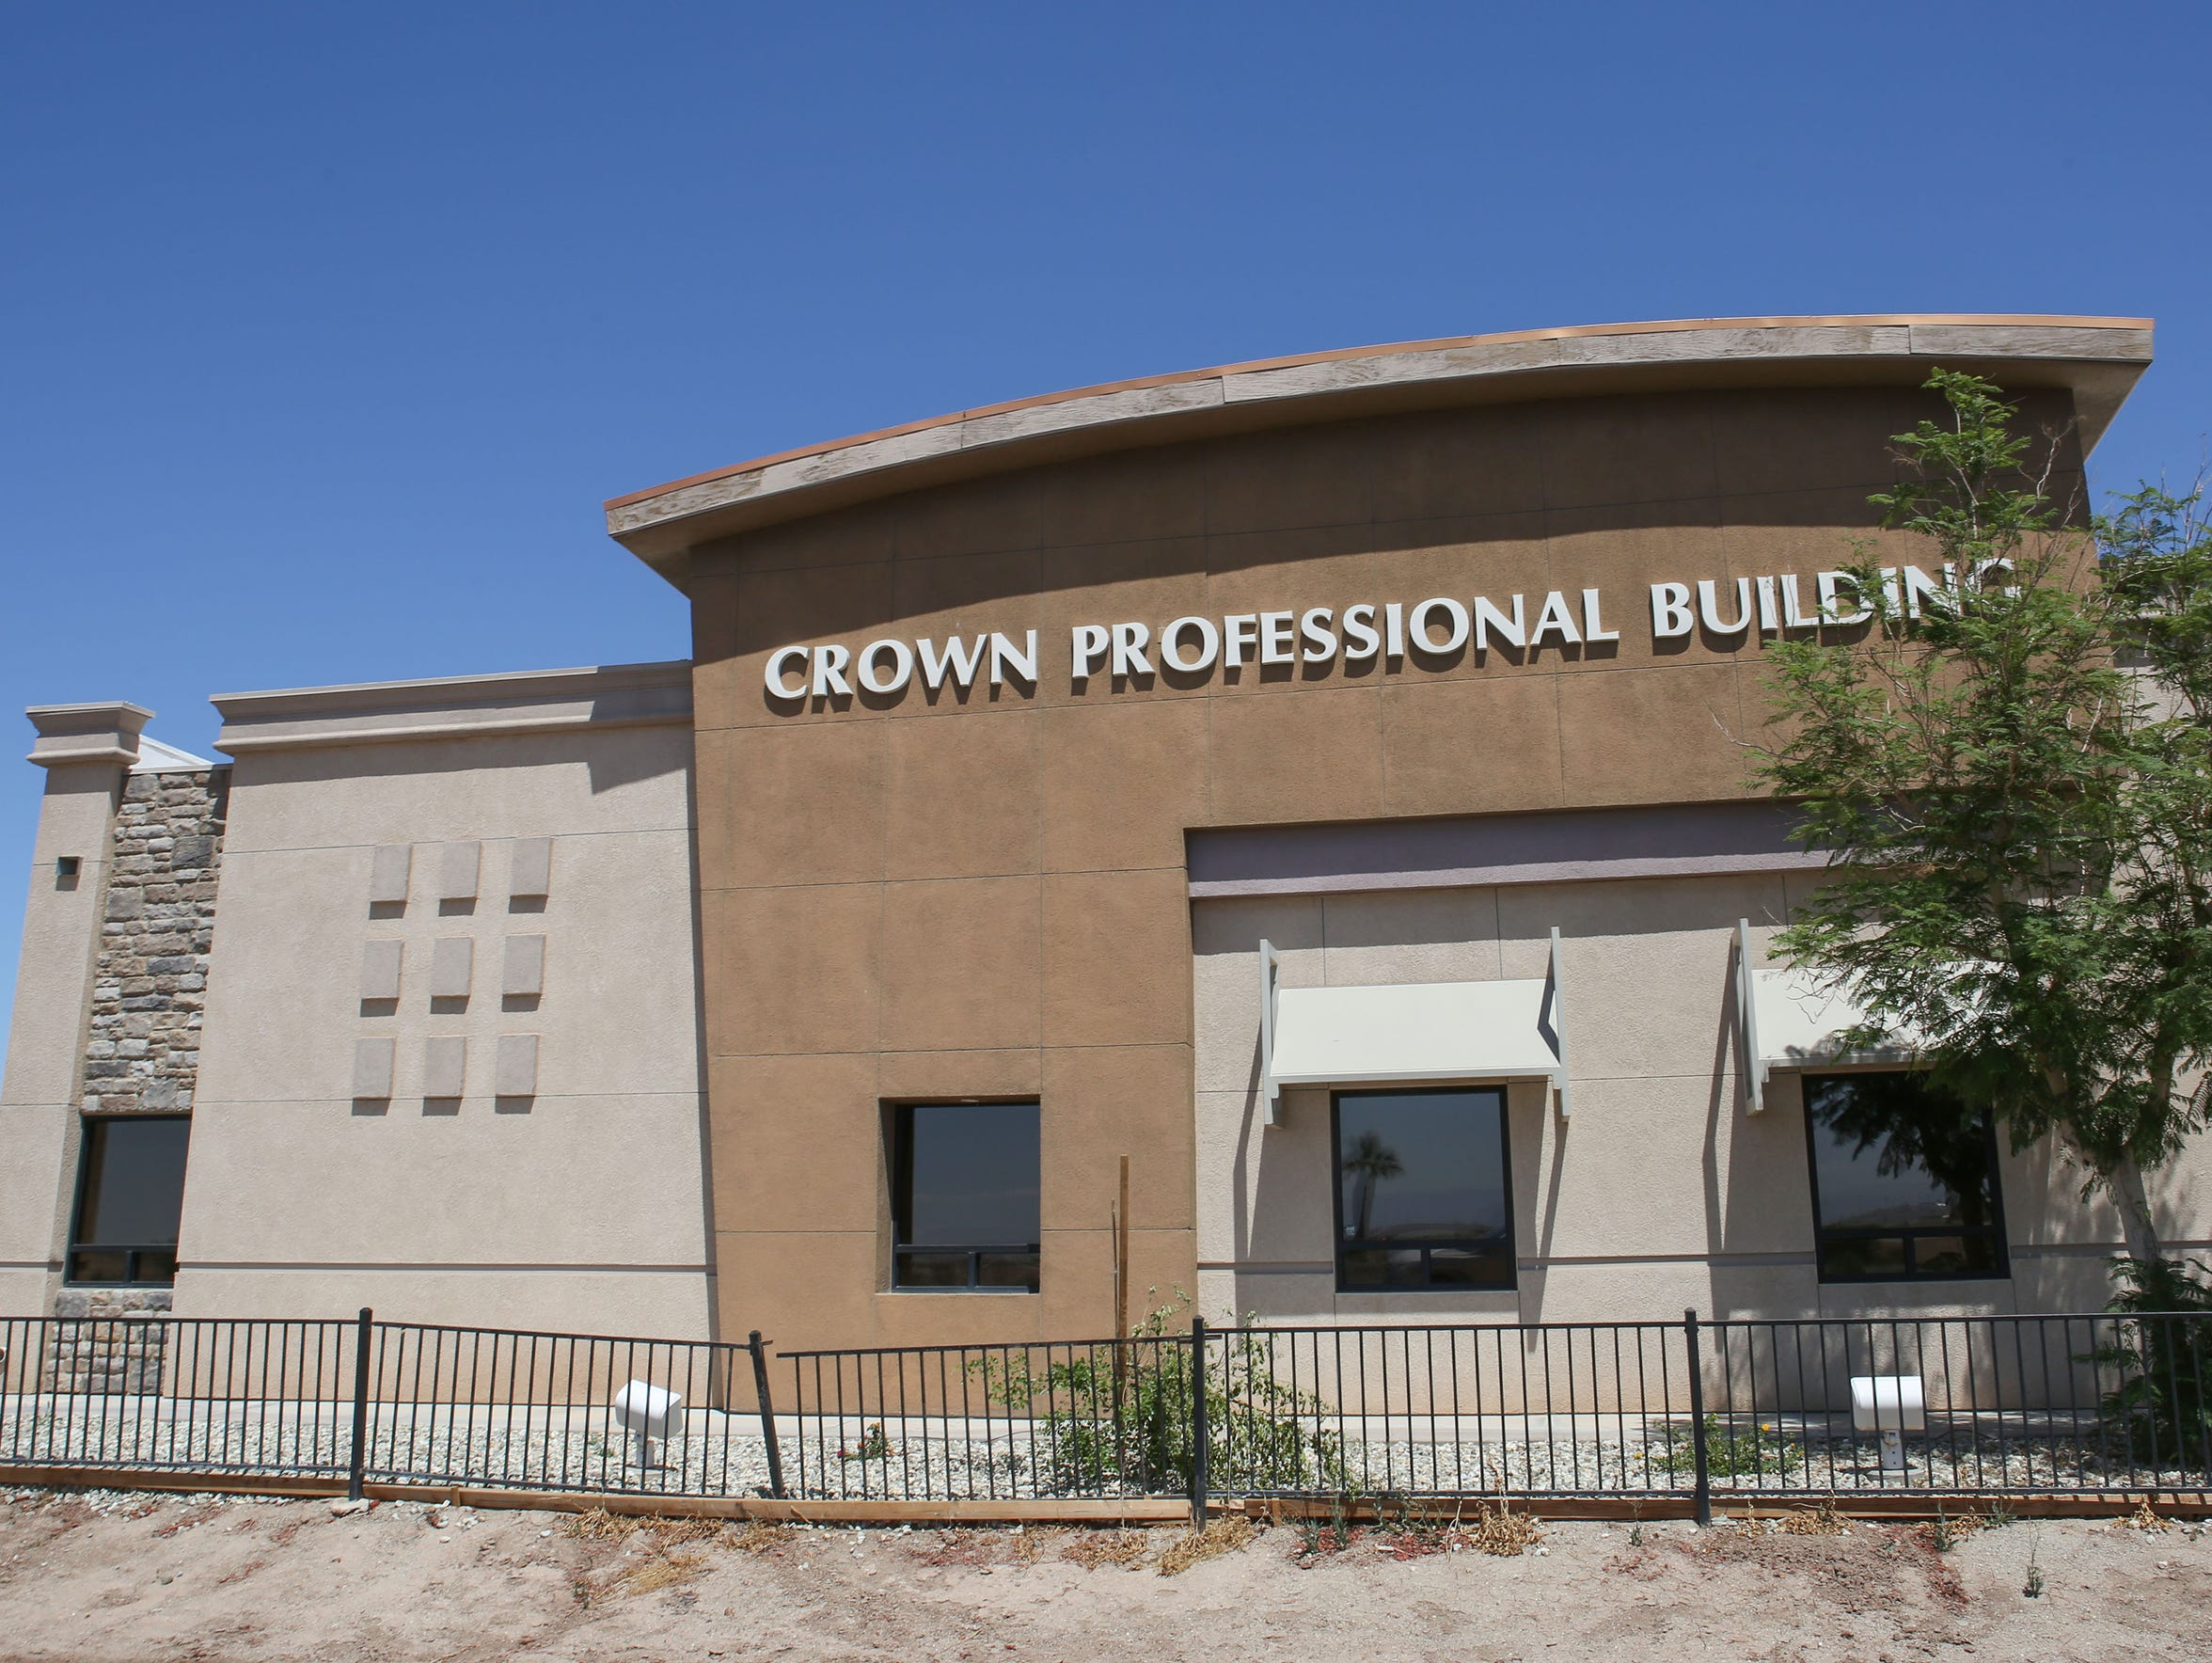 The Crown Professional Building in Imperial, California.